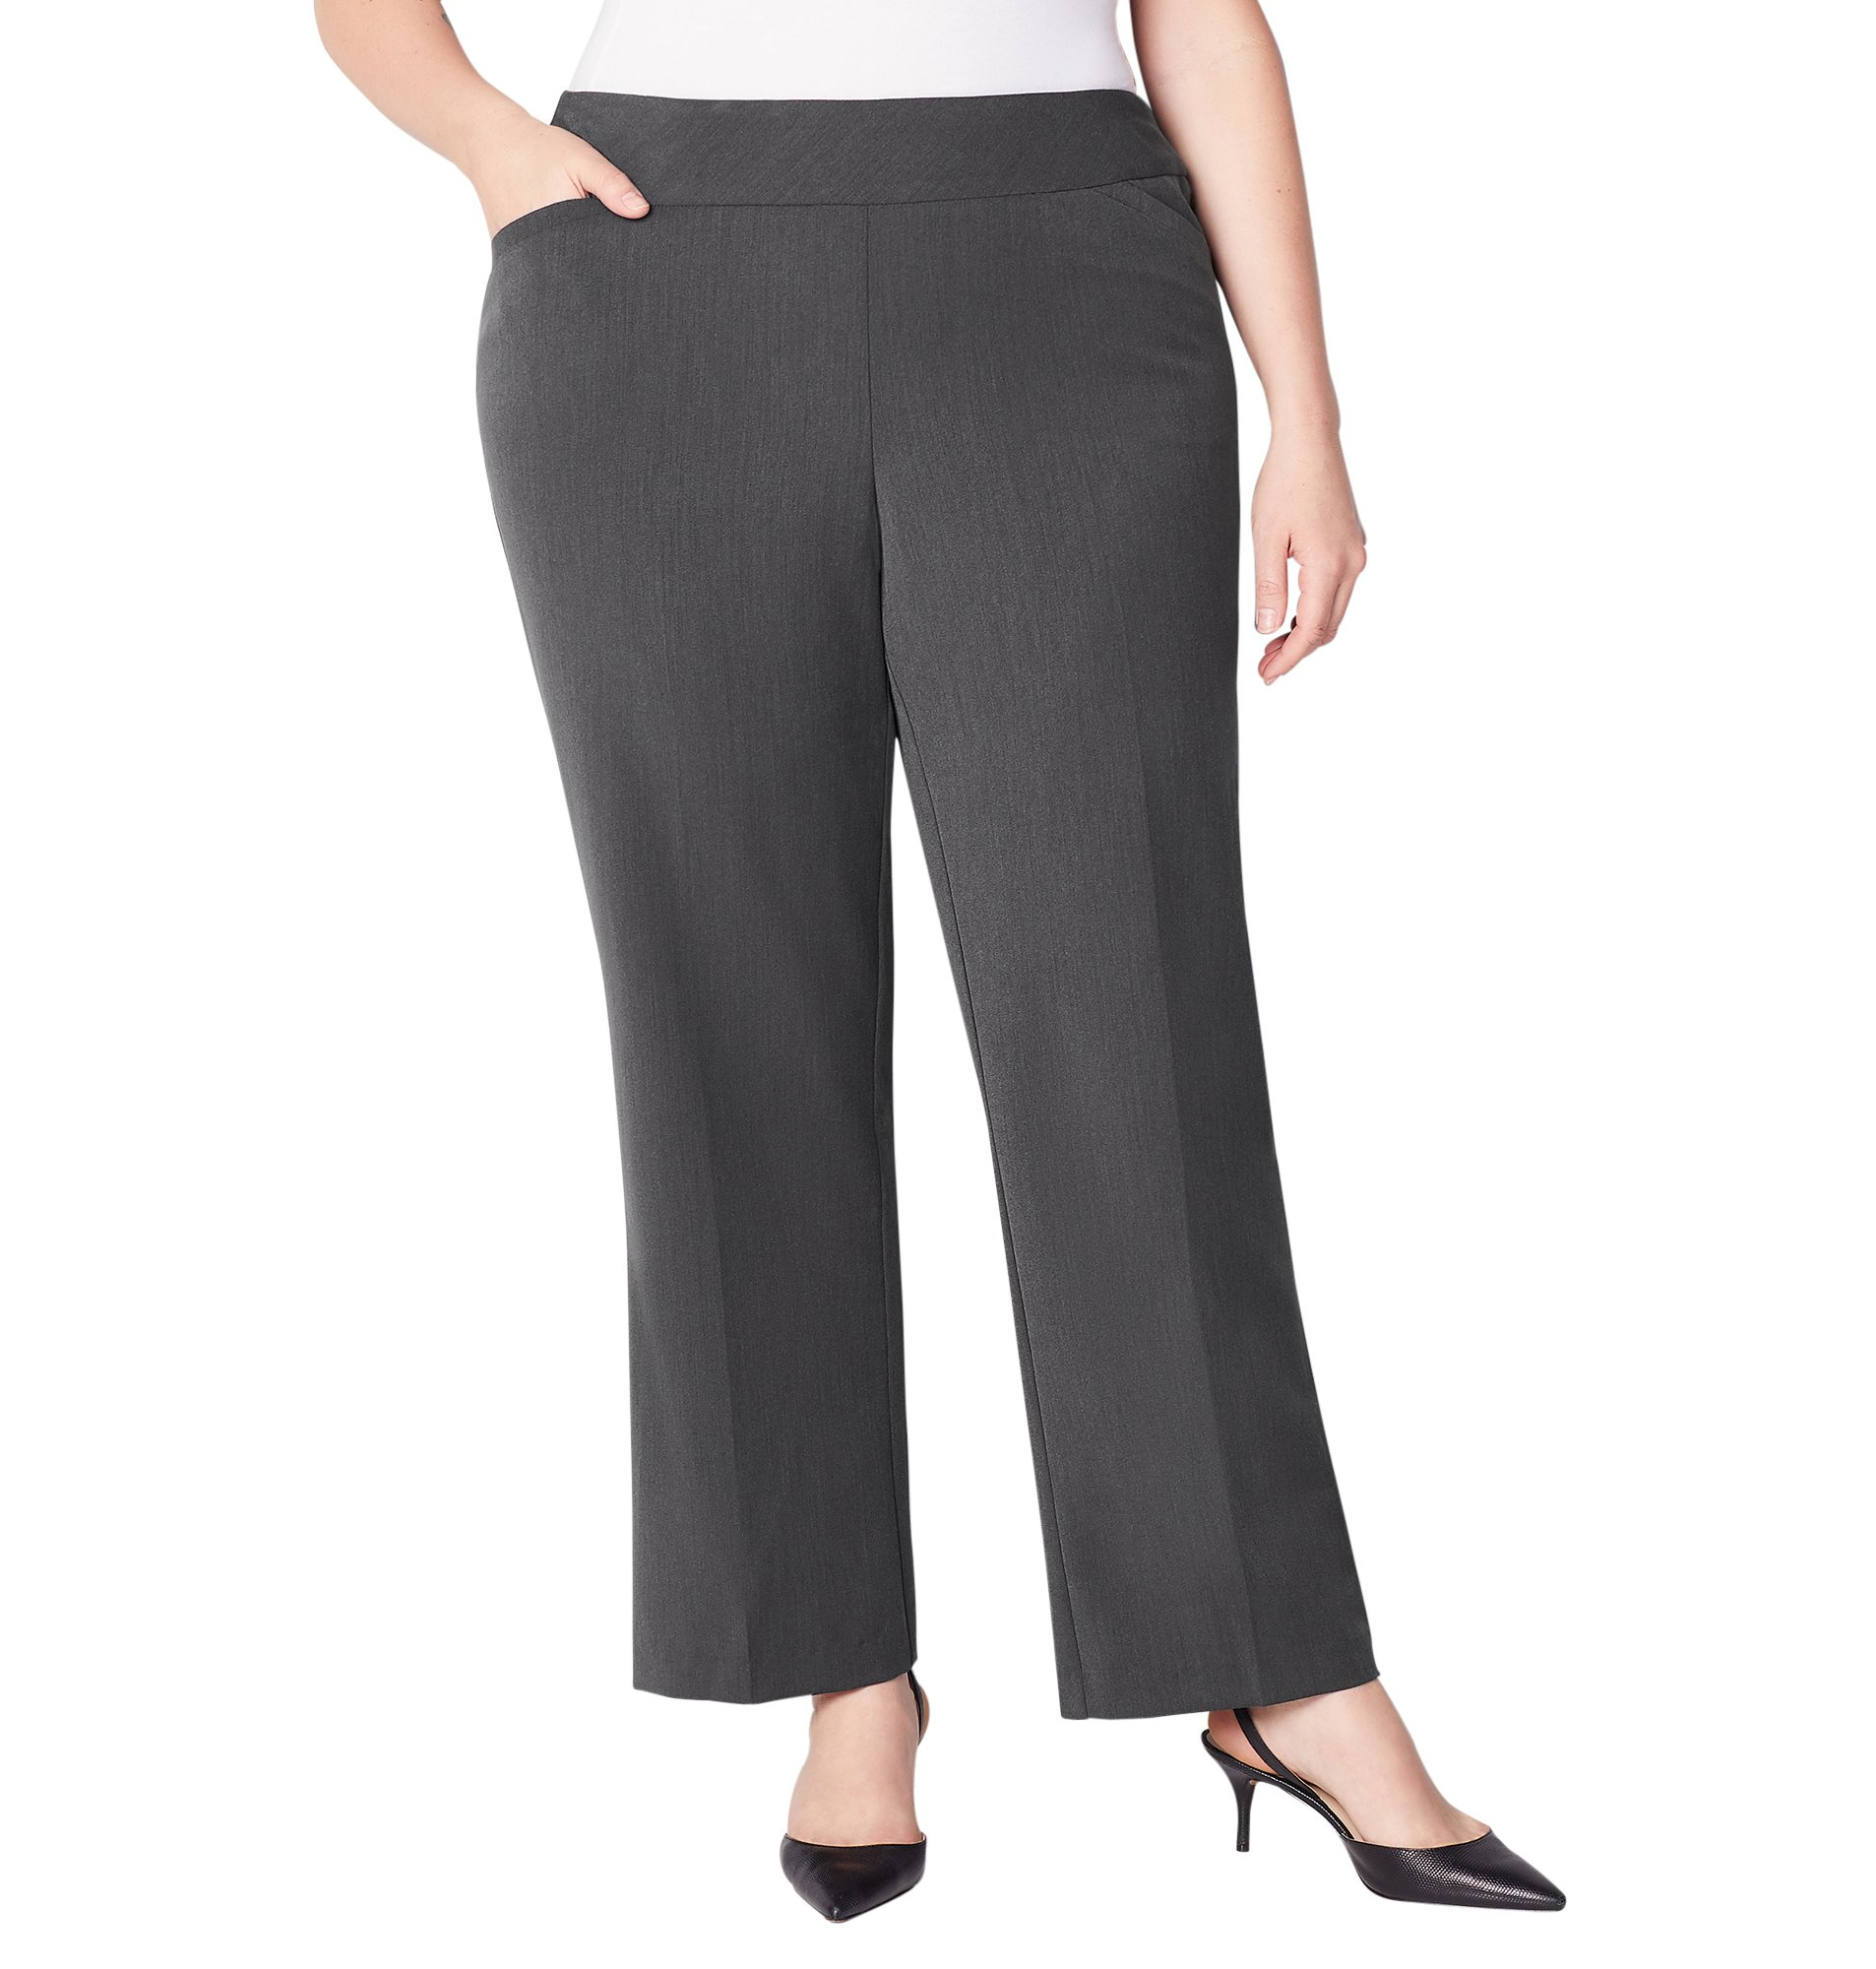 Avenue Women's Luxe Slimming Pull-On Pant Tummy Control, 14 Dark Grey by Avenue (Image #1)